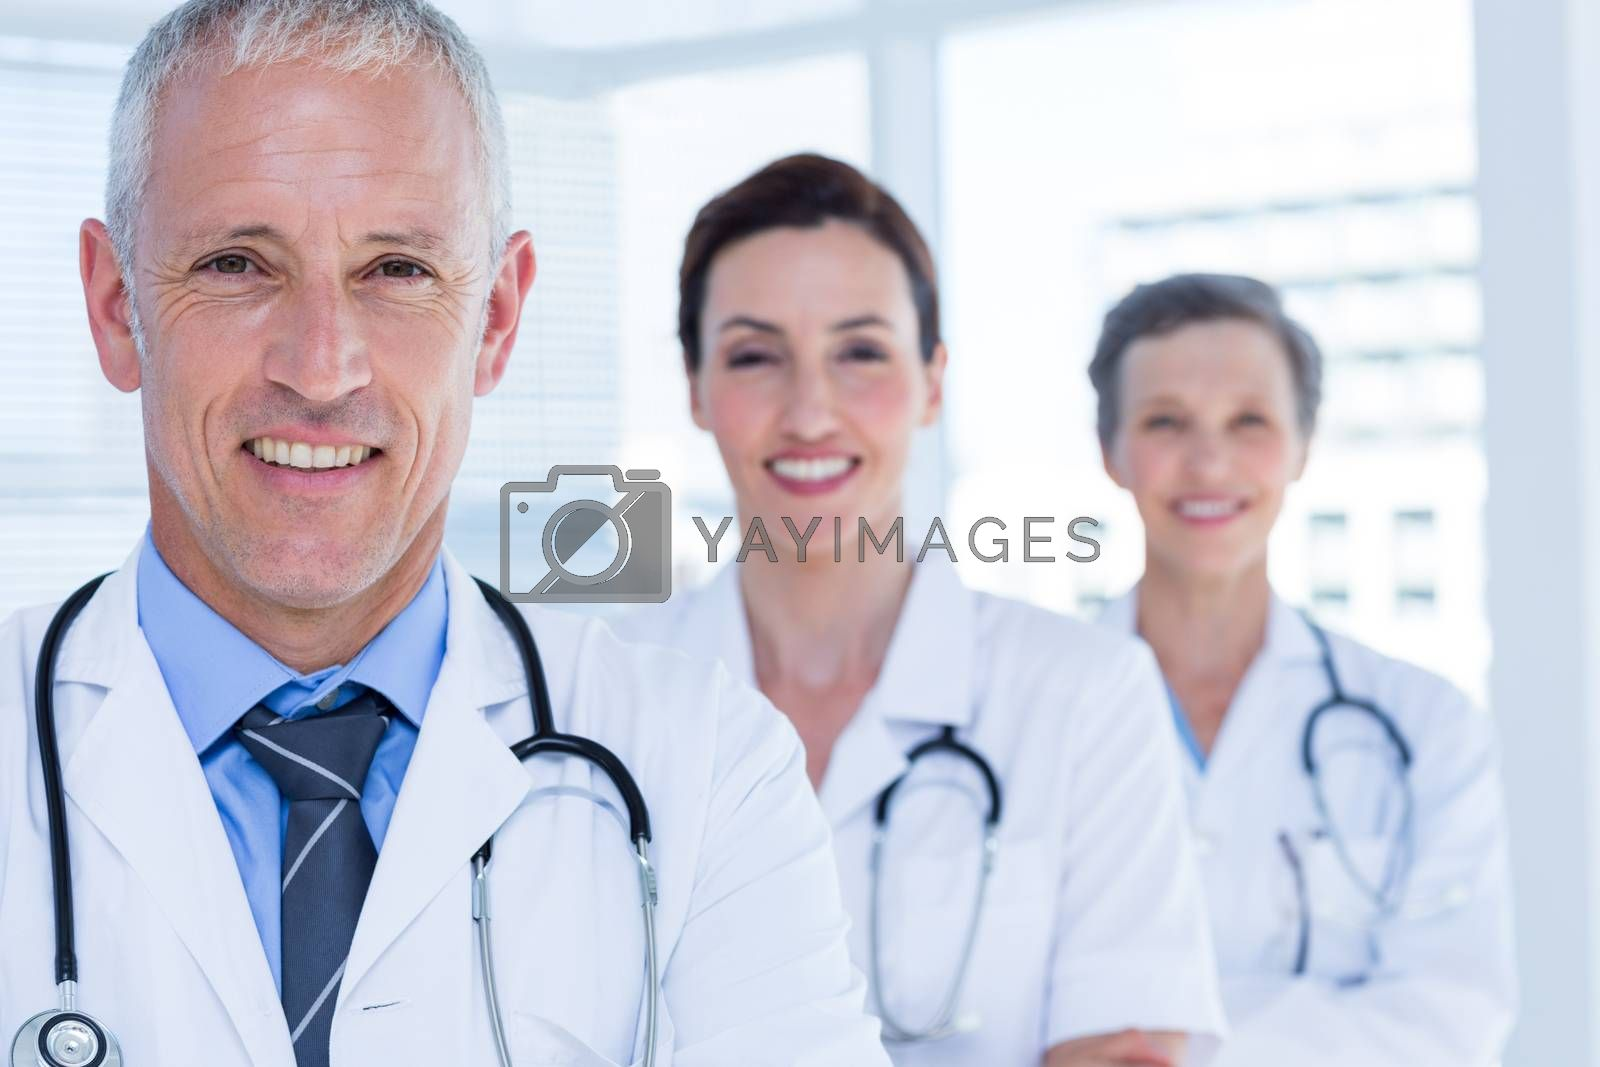 Royalty free image of Portrait of three smiling medical colleagues looking at camera by Wavebreakmedia